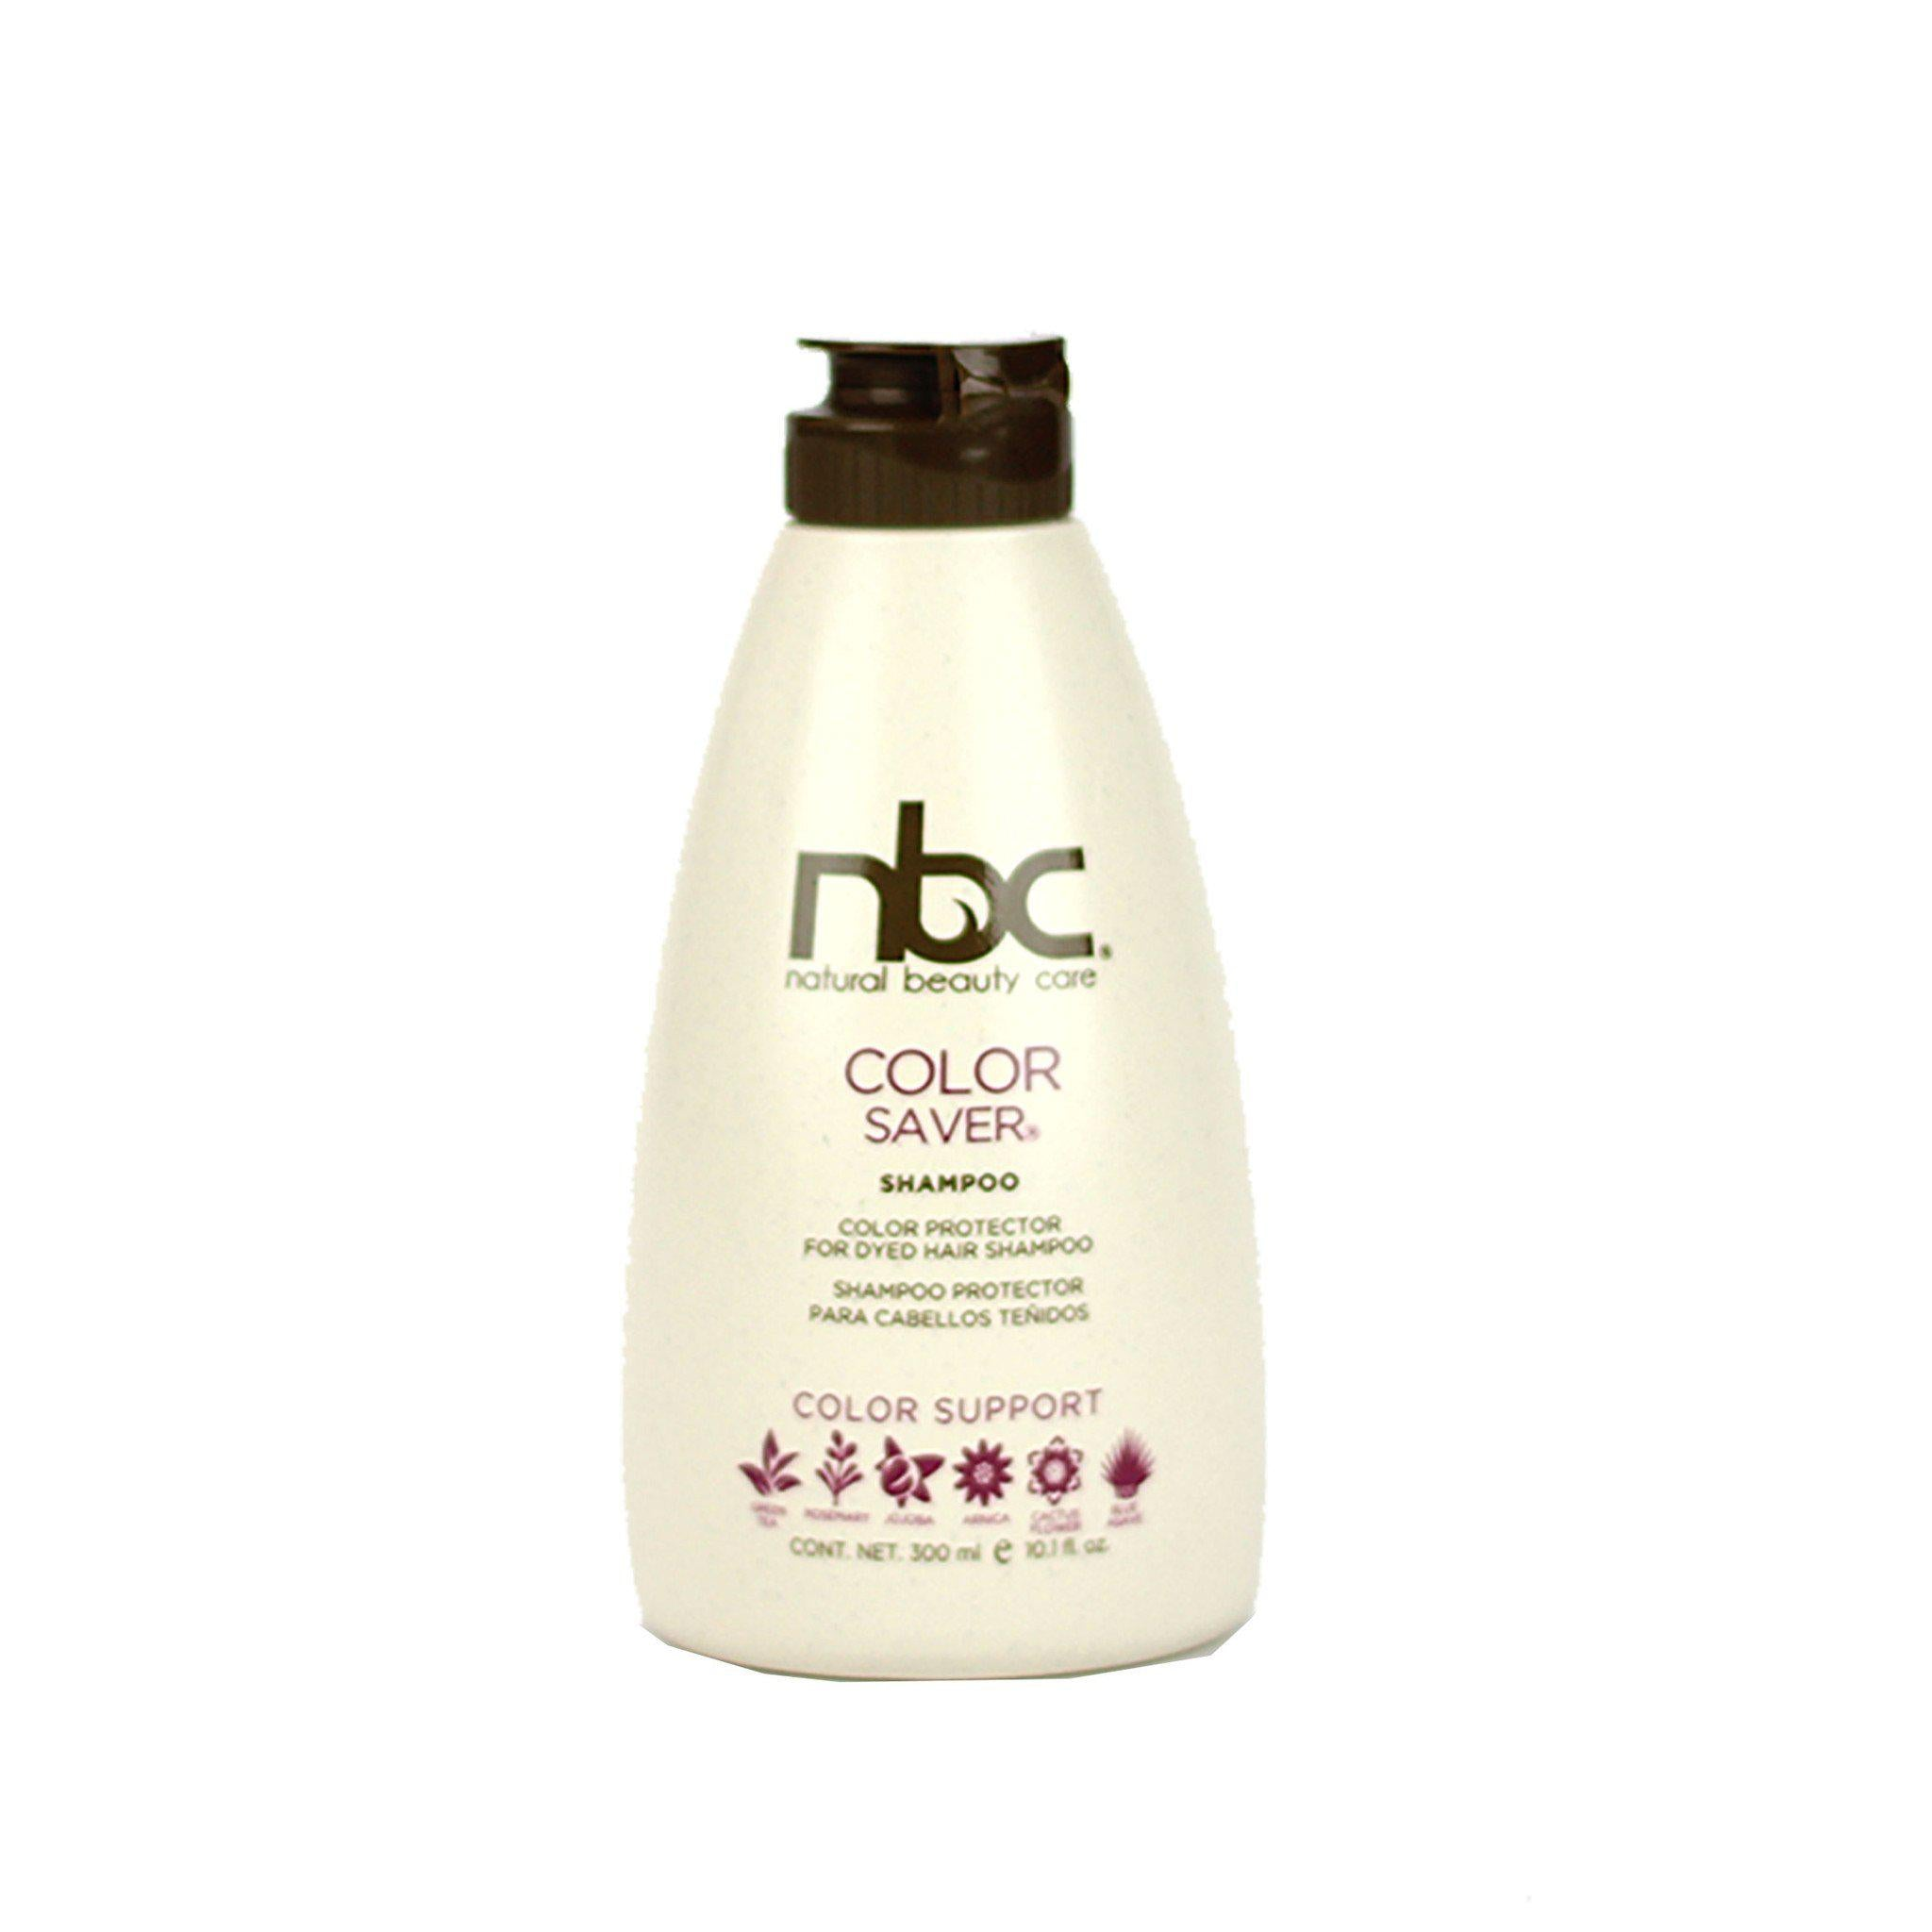 NBC SHAMPOO COLOR SAVER 300 ML